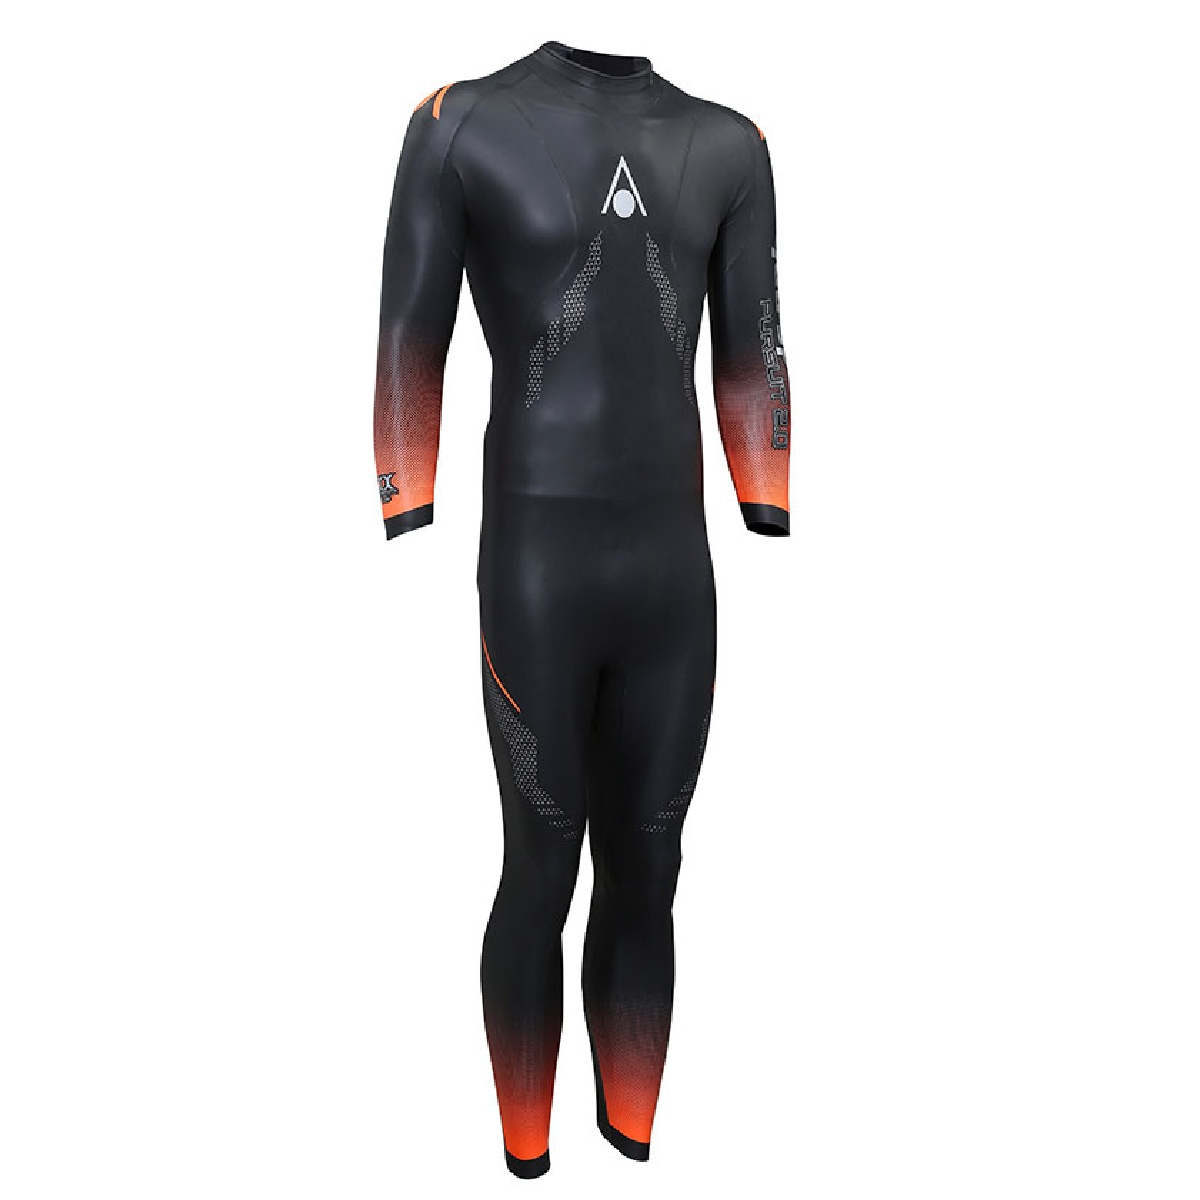 COMBINAISON ISOTHERMIQUE (WETSUIT) AQUASPHERE PURSUIT 2.0 HOMME